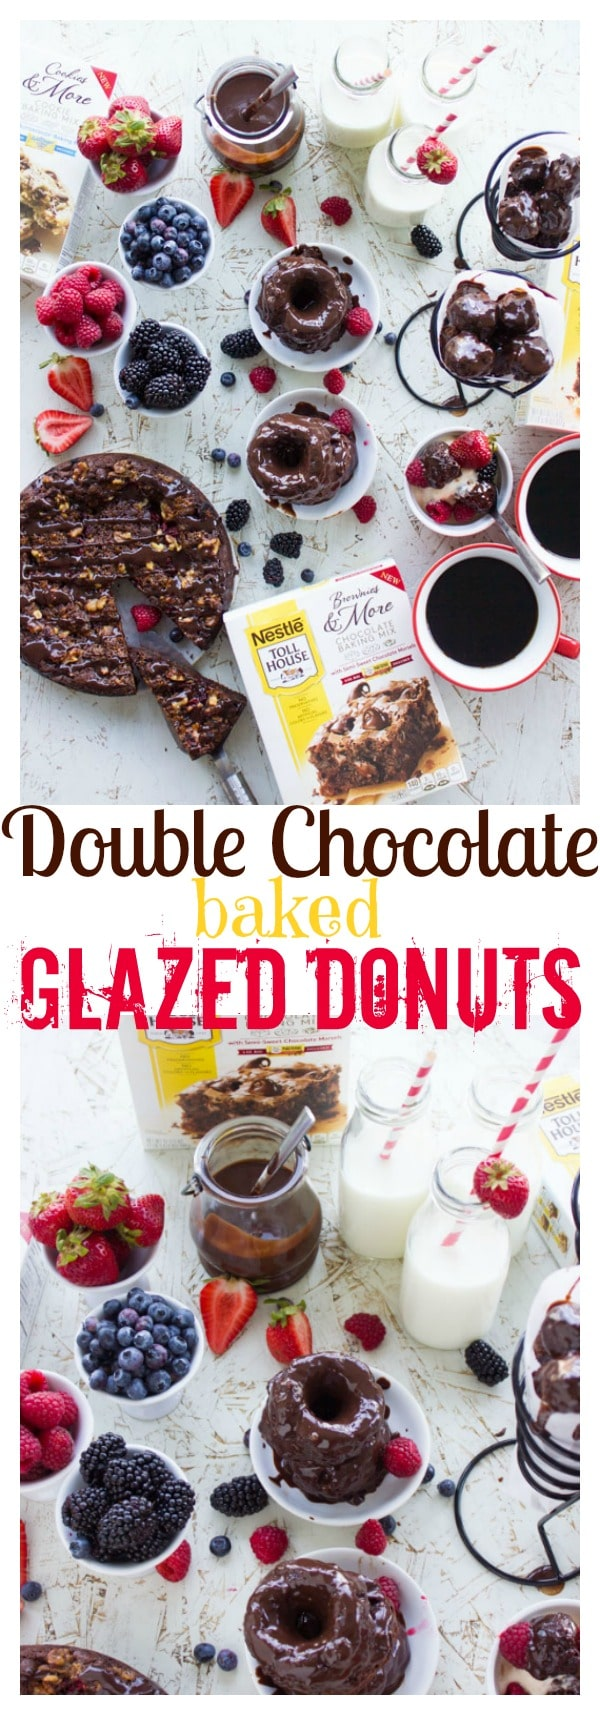 Baked Double Chocolate Glazed Donuts - these are a chocoholic's dream! Divine melt in your mouth donuts studded with chocolate chips and drizzled with a velvety smooth two-ingredient chocolate sauce. #donuts, #glazed, #chocolate, #kids,